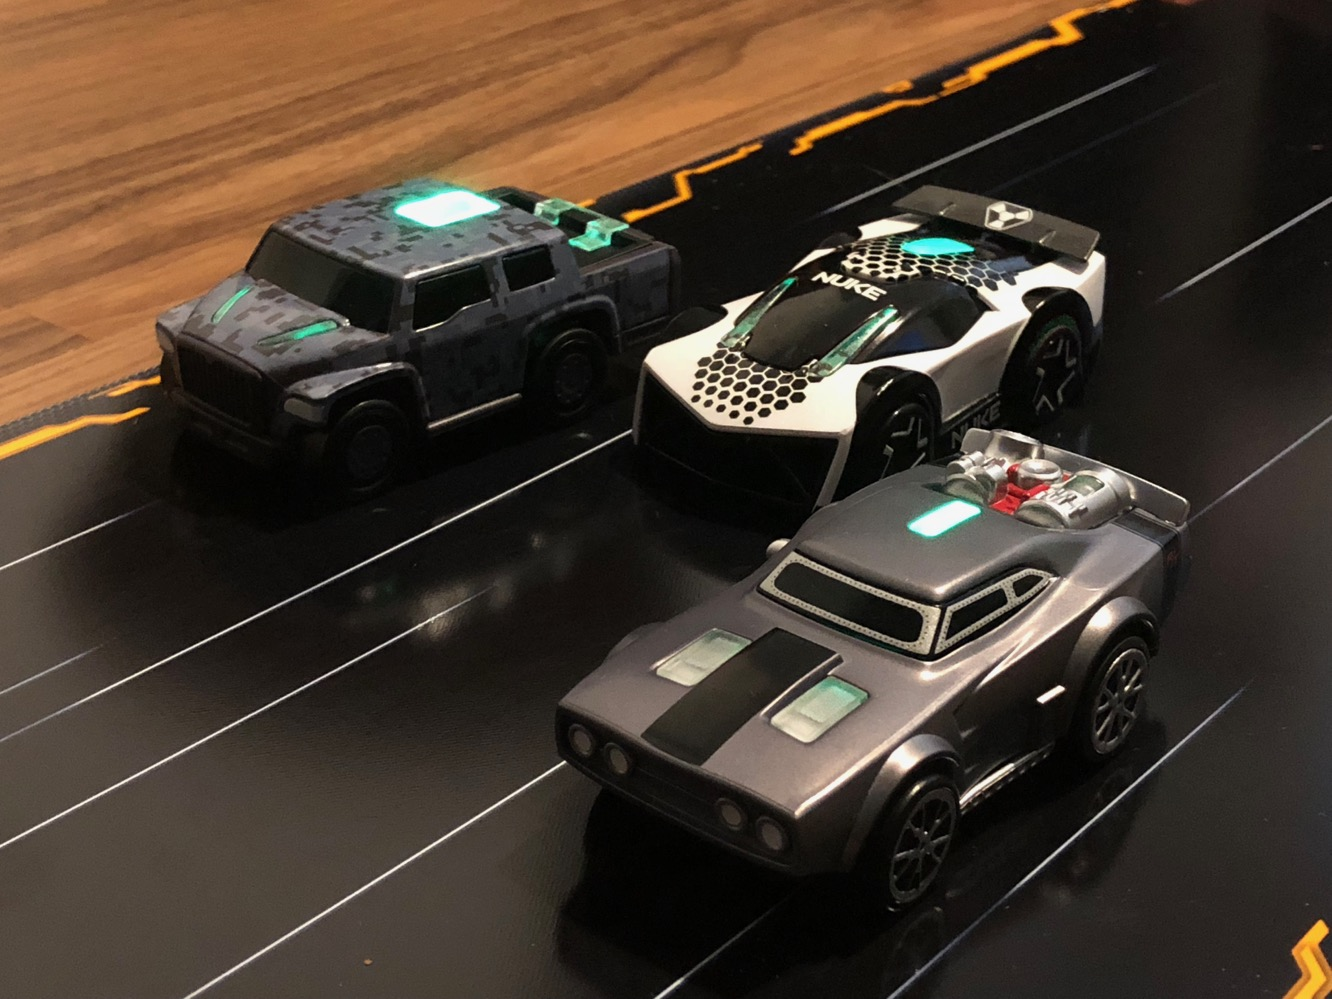 Review Anki Overdrive Fast And Furious Edition ILounge - We drive fast cars